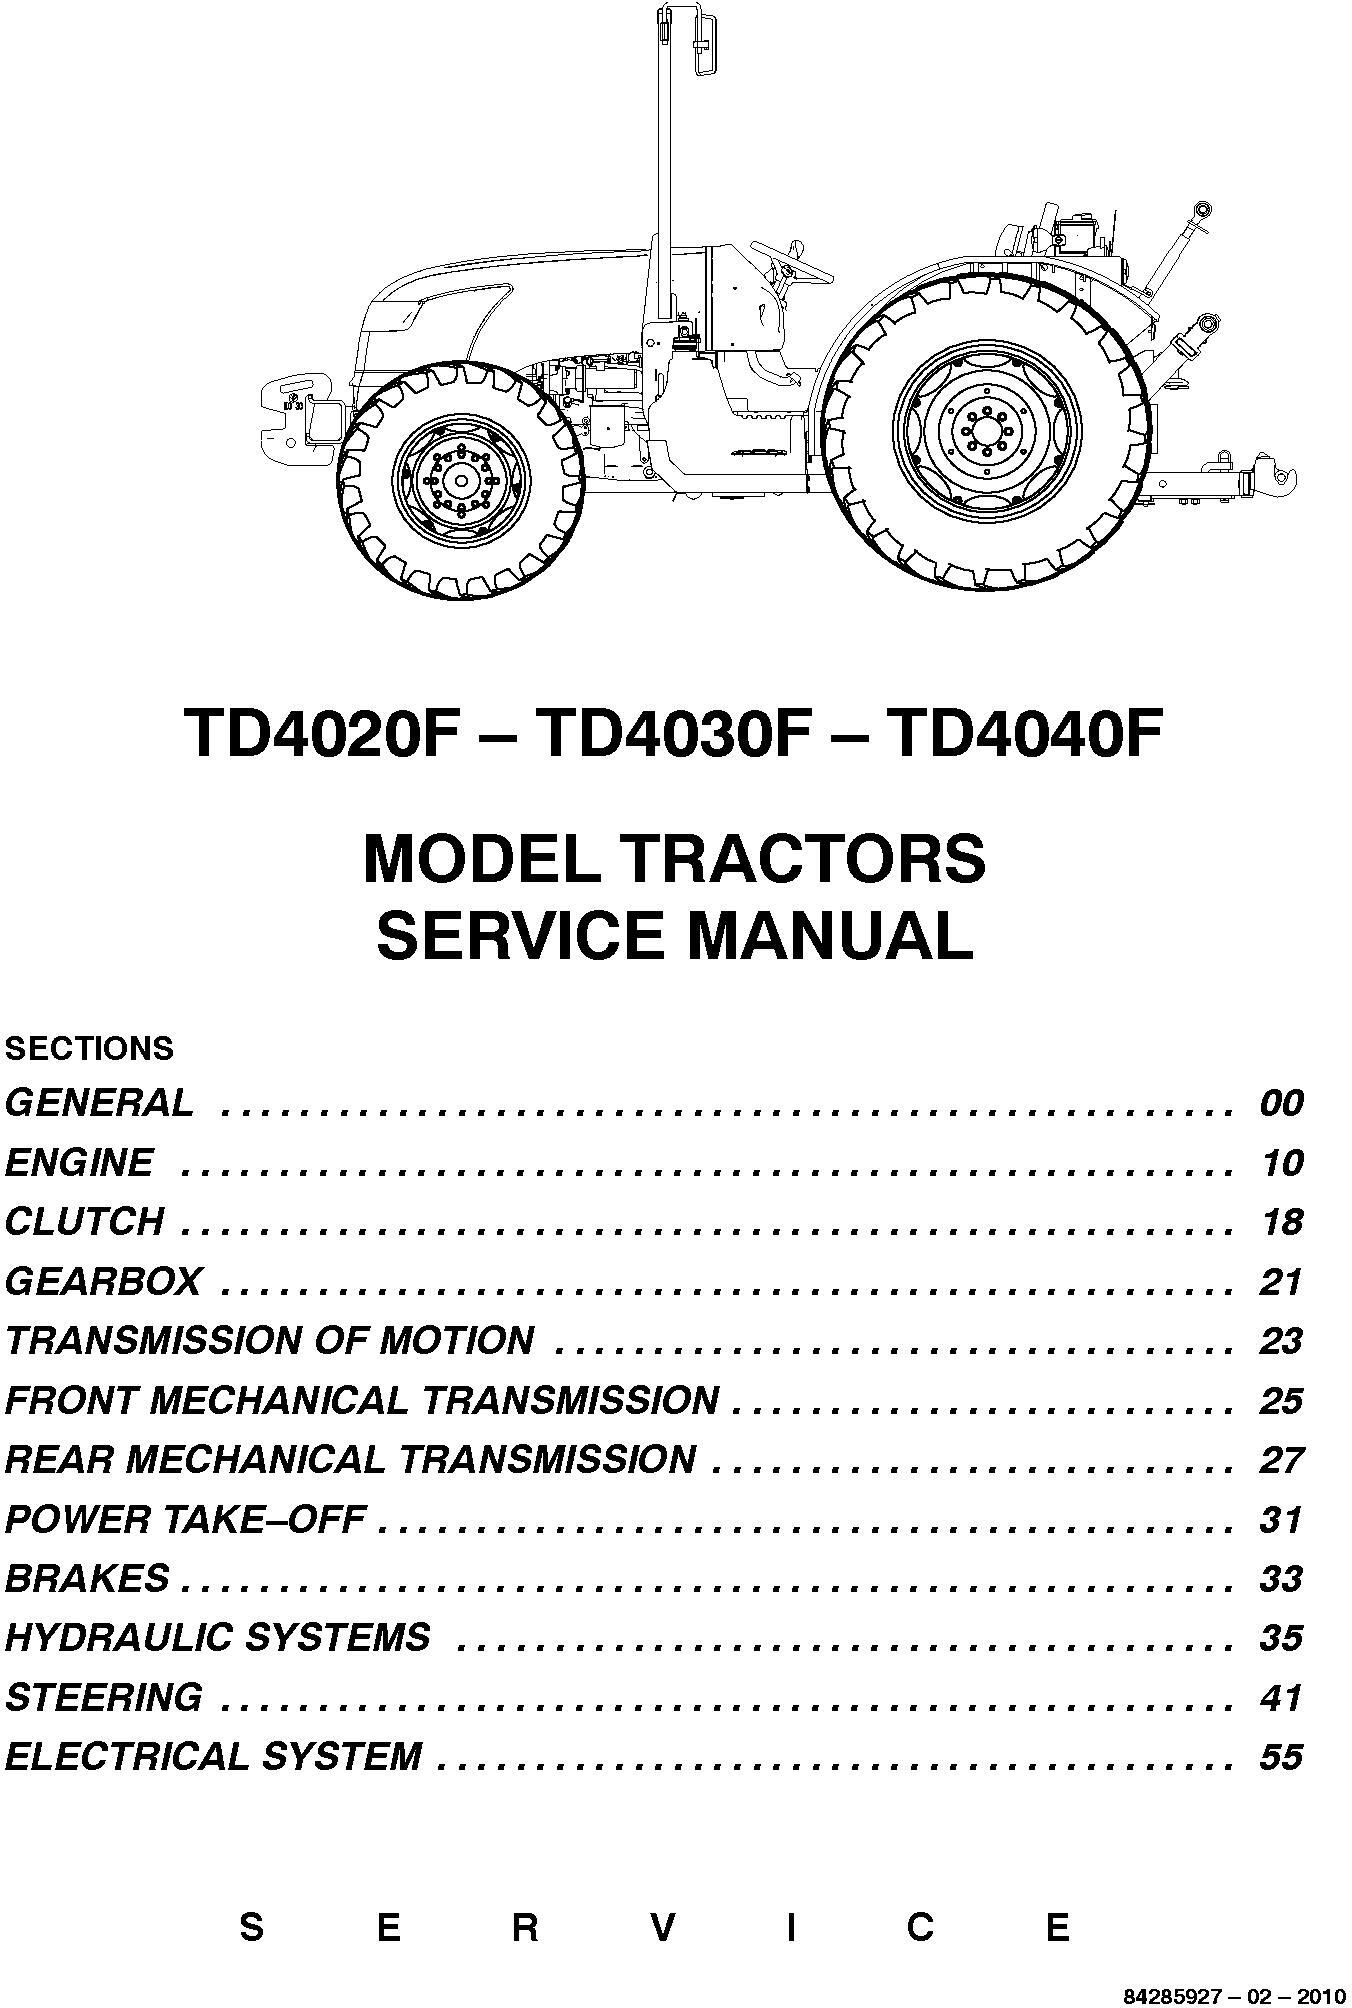 New Holland TD4020F, TD4030F, TD4040F Agricultural Tractor Service Manual (02/2010) - 1